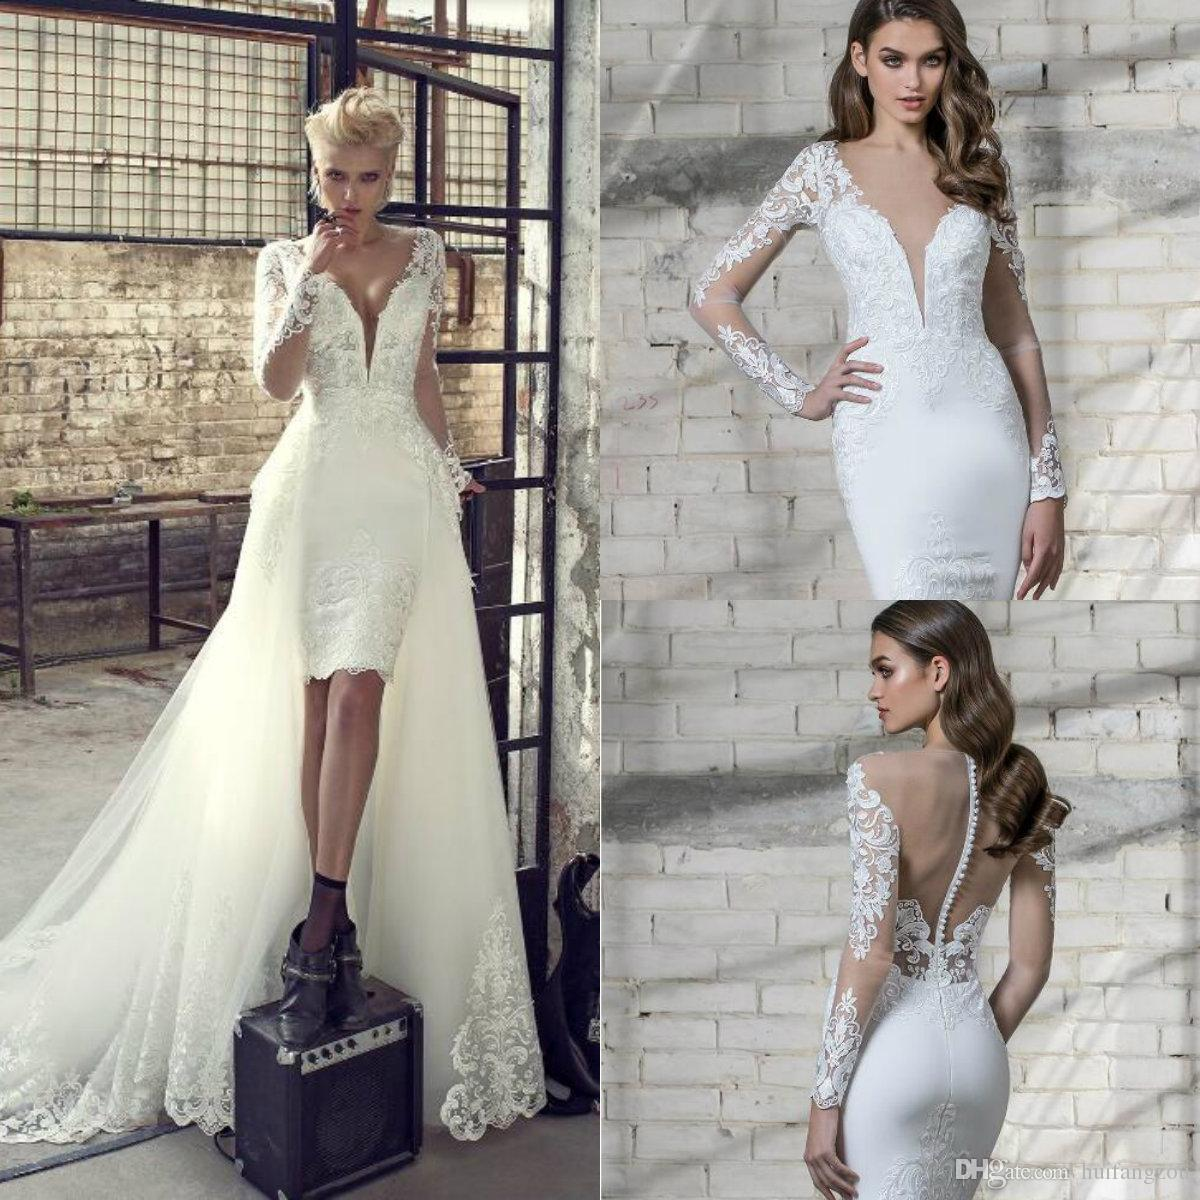 Modest Short Wedding Dress Pnina Tornai 2019 Spring Long Sleeve Sheer V Neck Lace Applique Buttons Back Bridal Gowns With Detachable Train